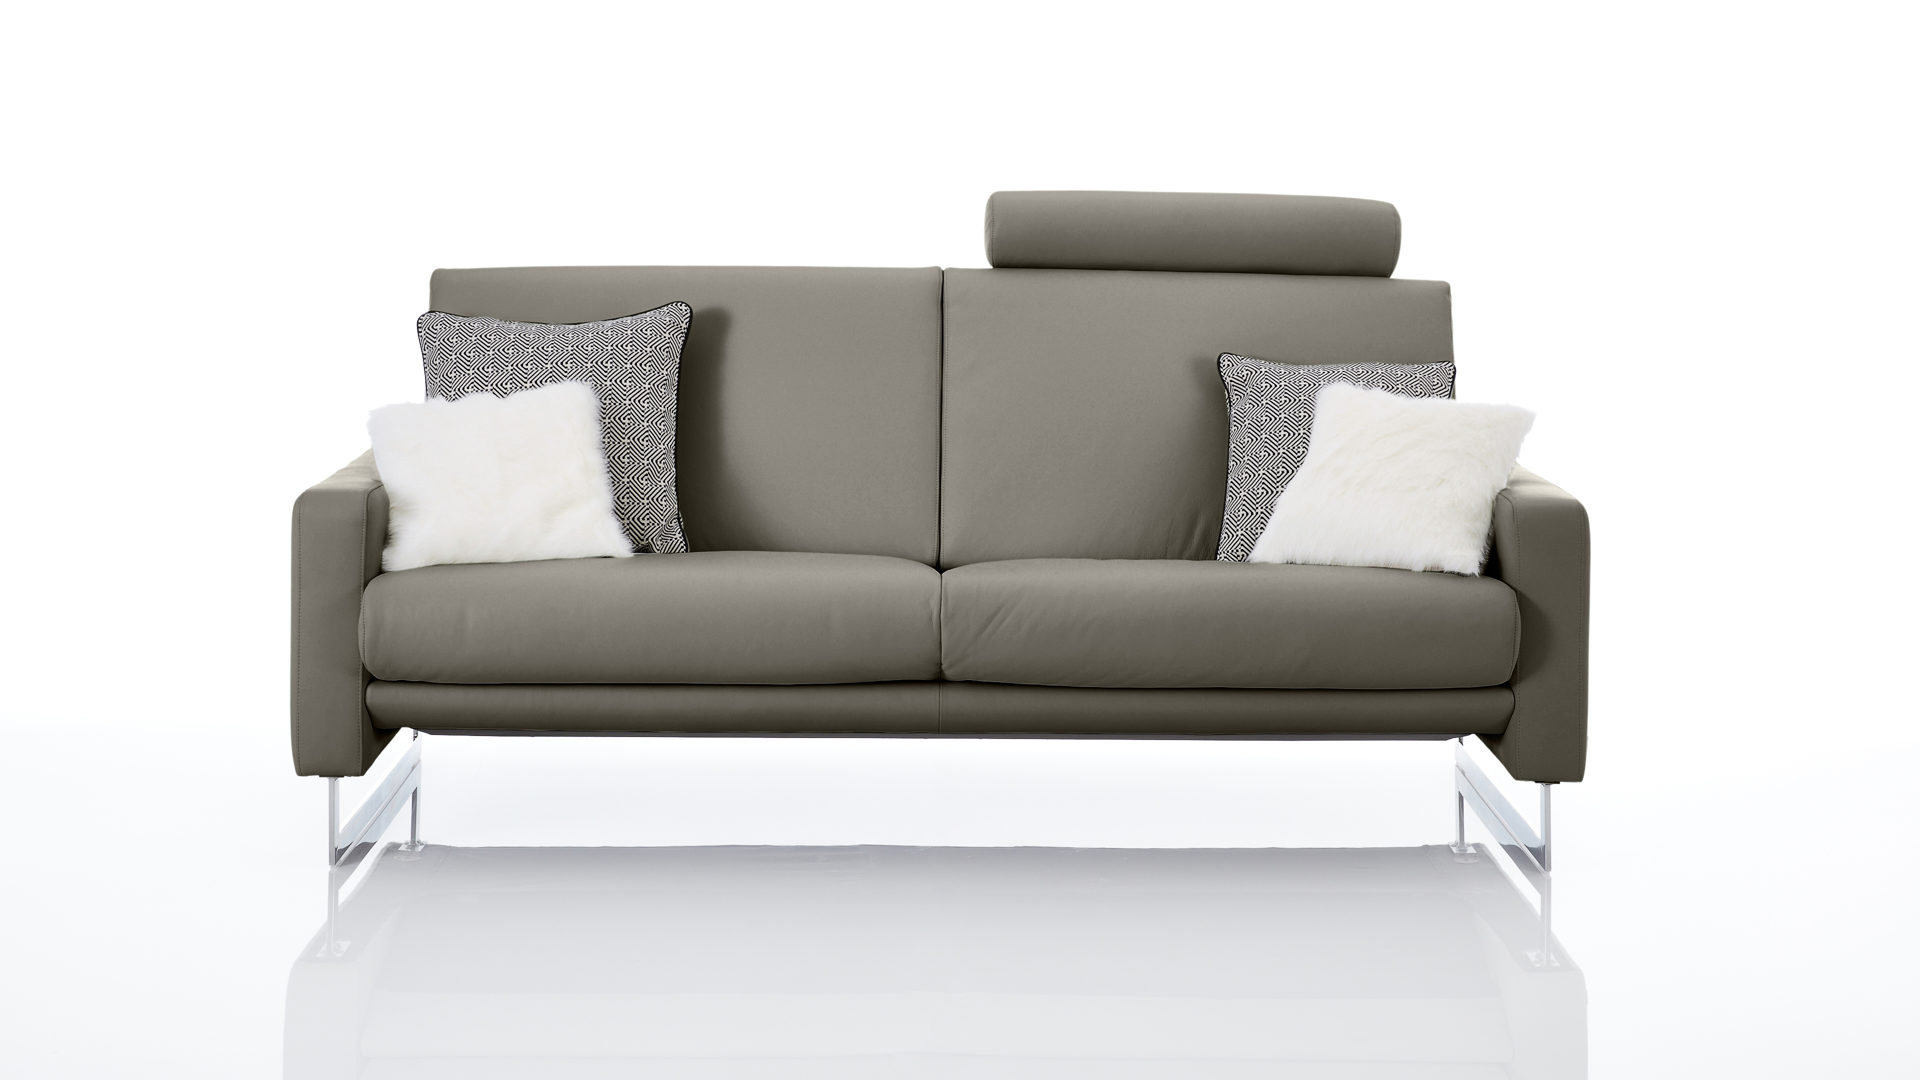 Polsterhocker Chrom Interliving Sofa Serie 4001 Dreisitzer Mit Federkern